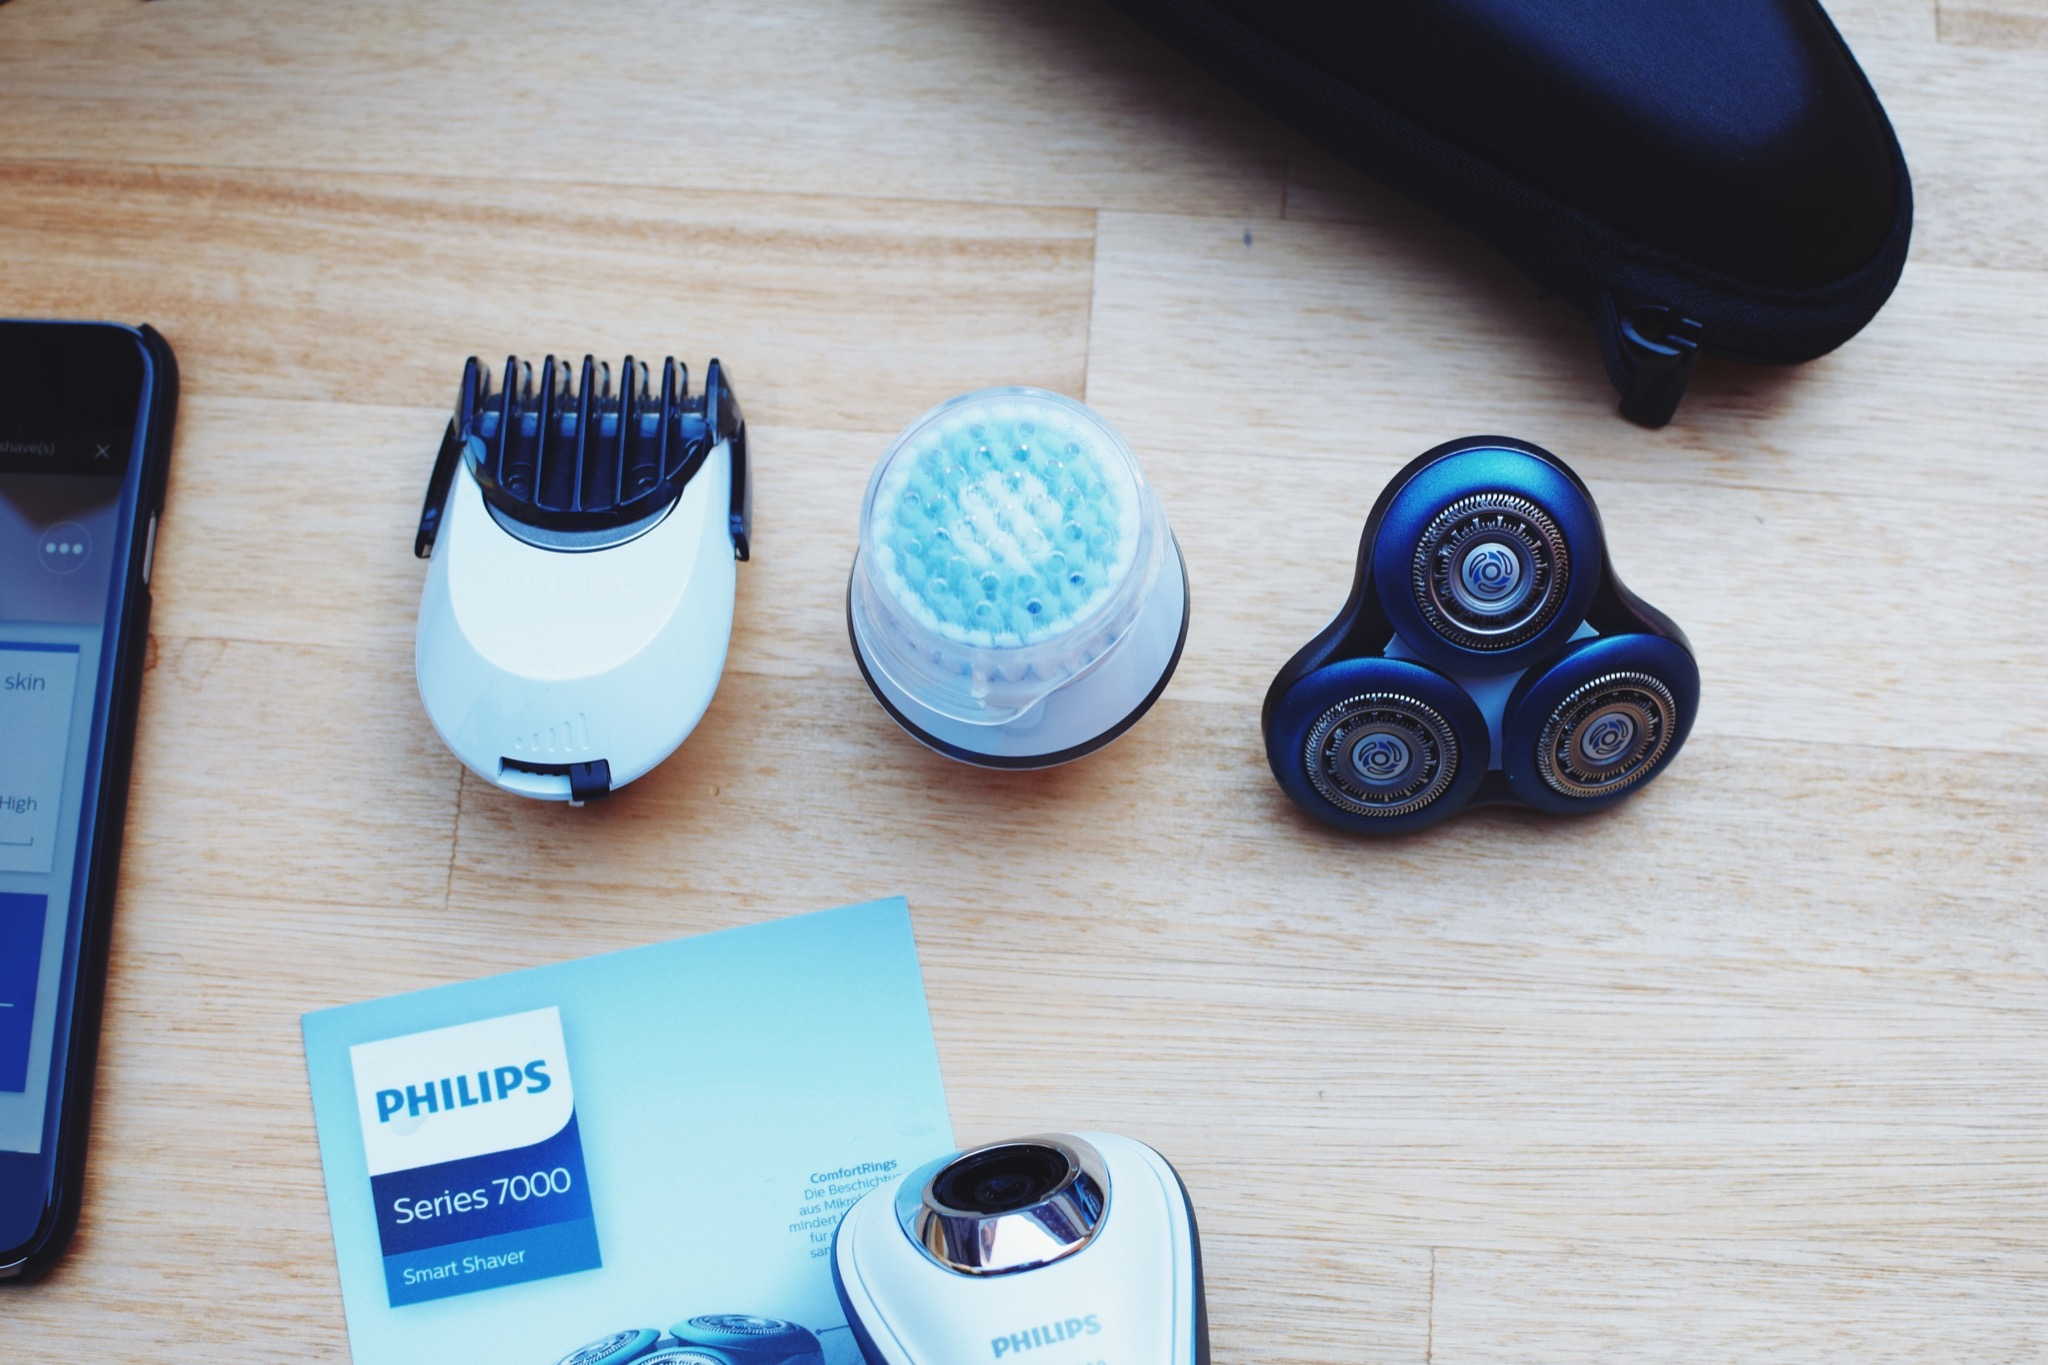 Philips Smart Shaver Series 7000 4